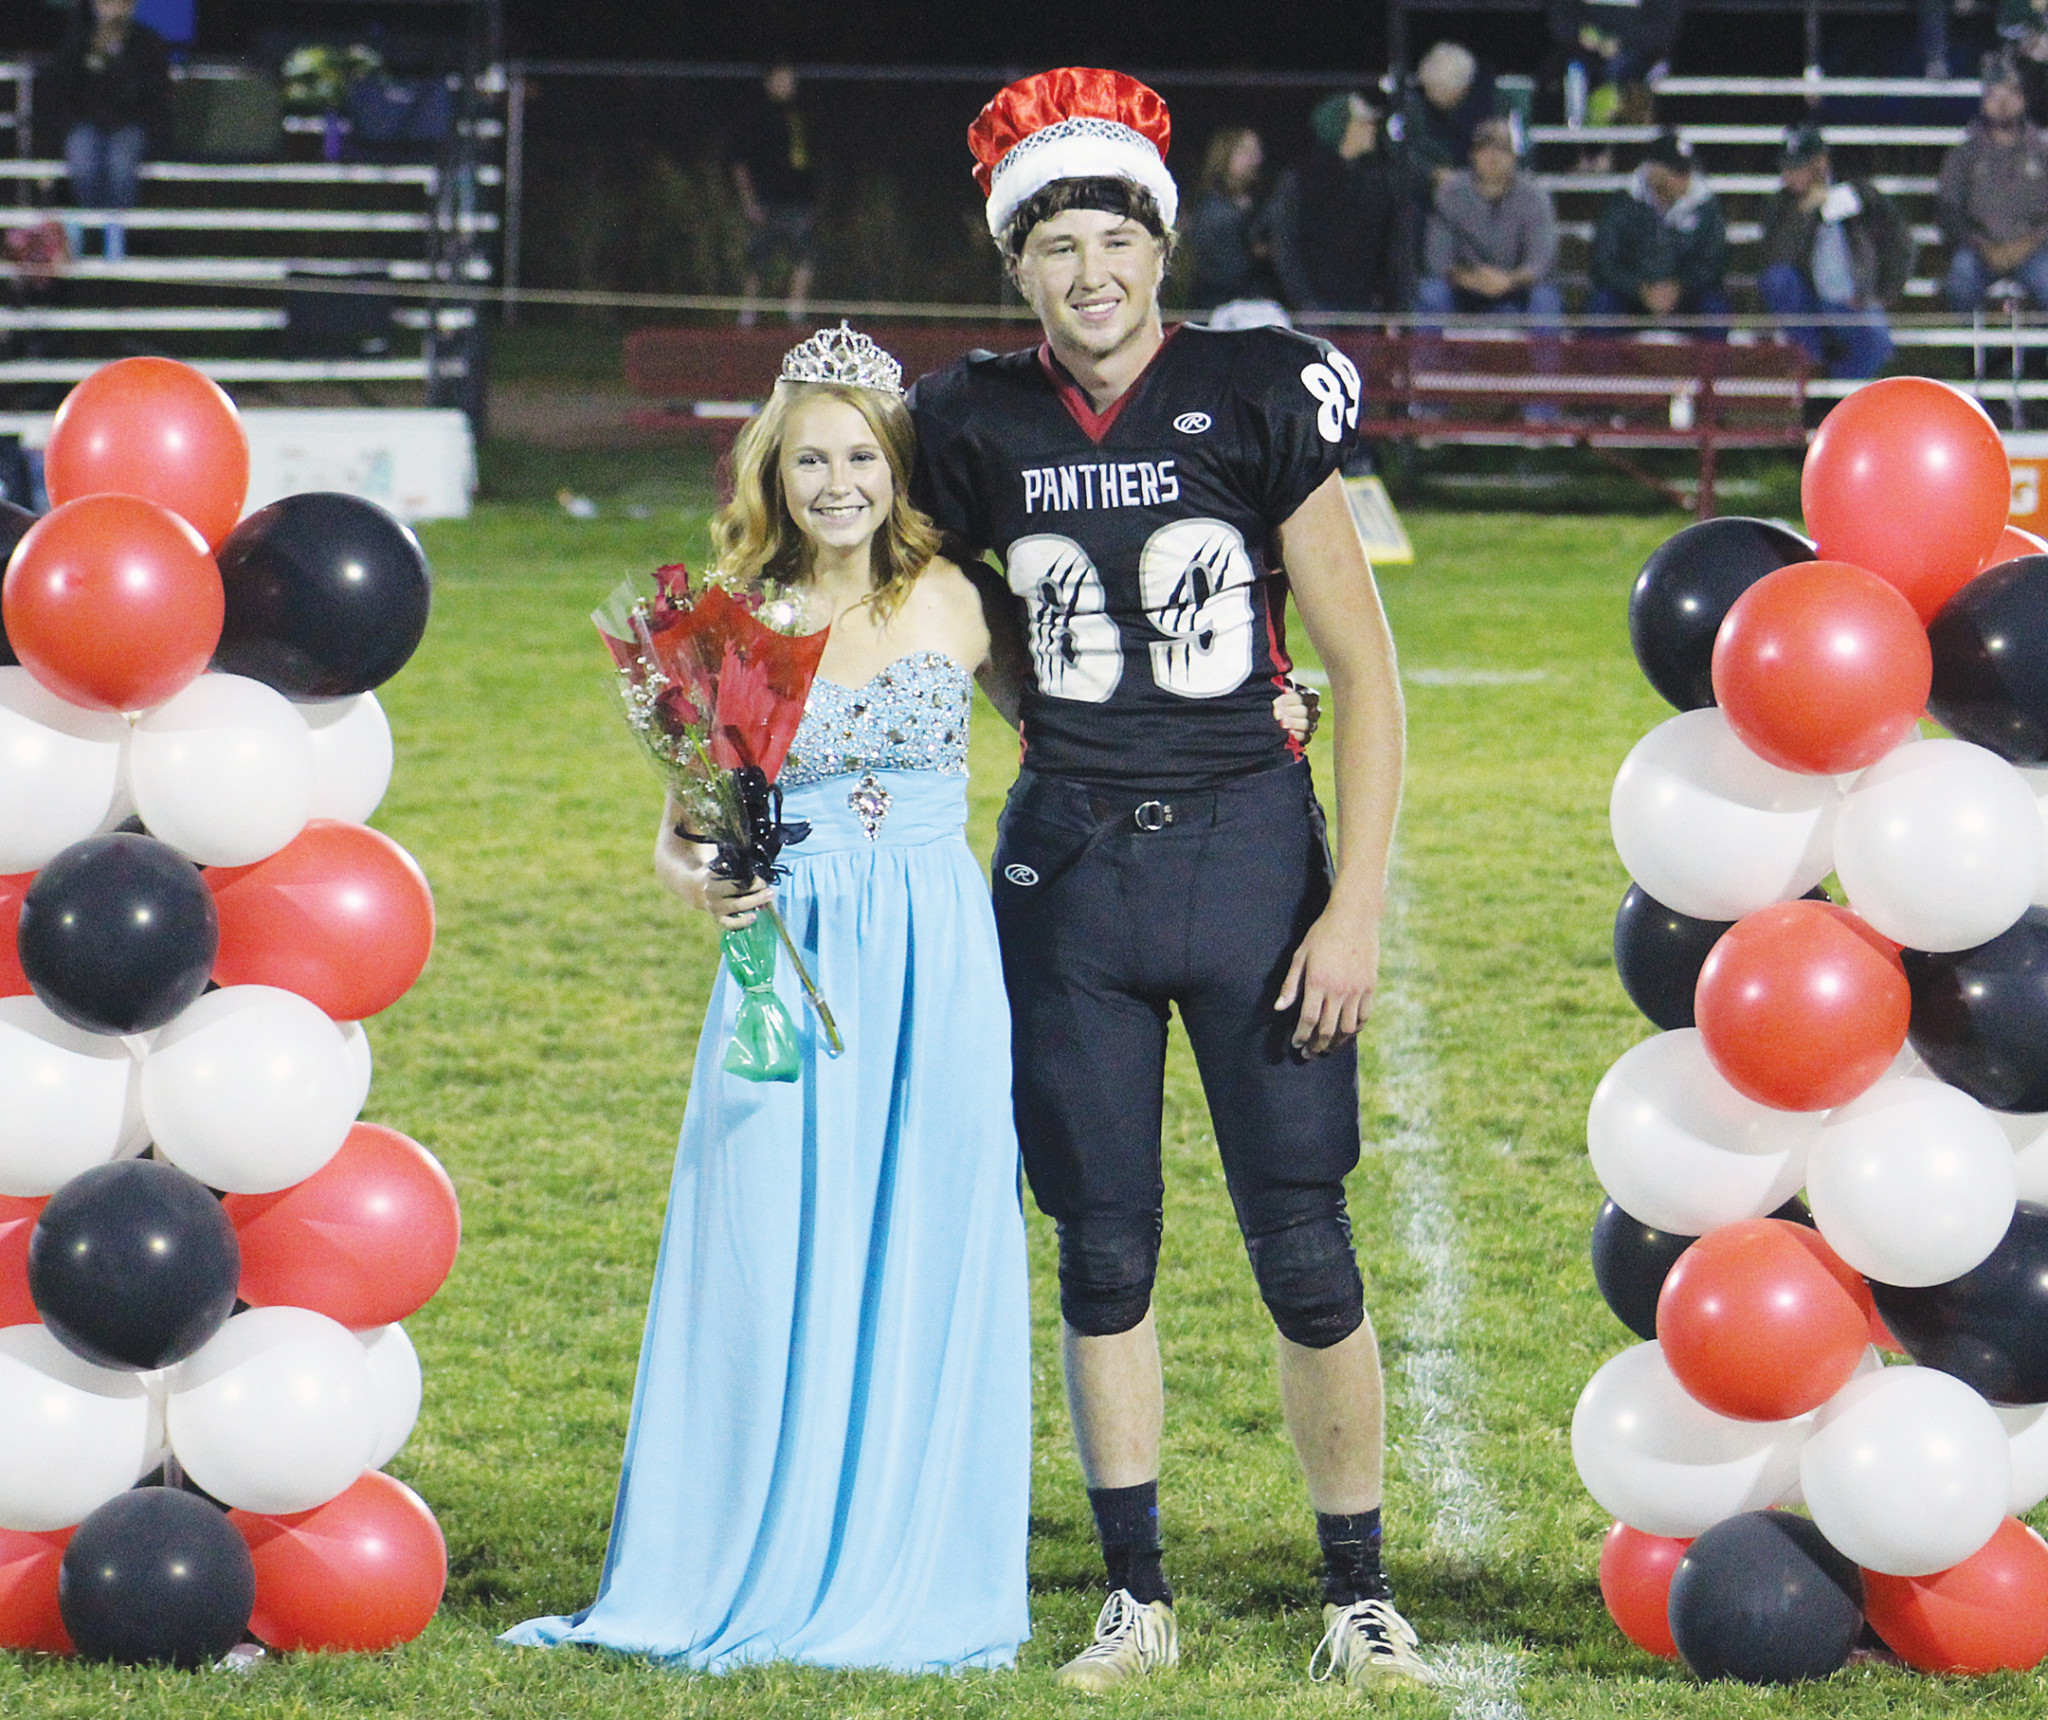 Queen Megan Flemmer and King Jack Bernhardt